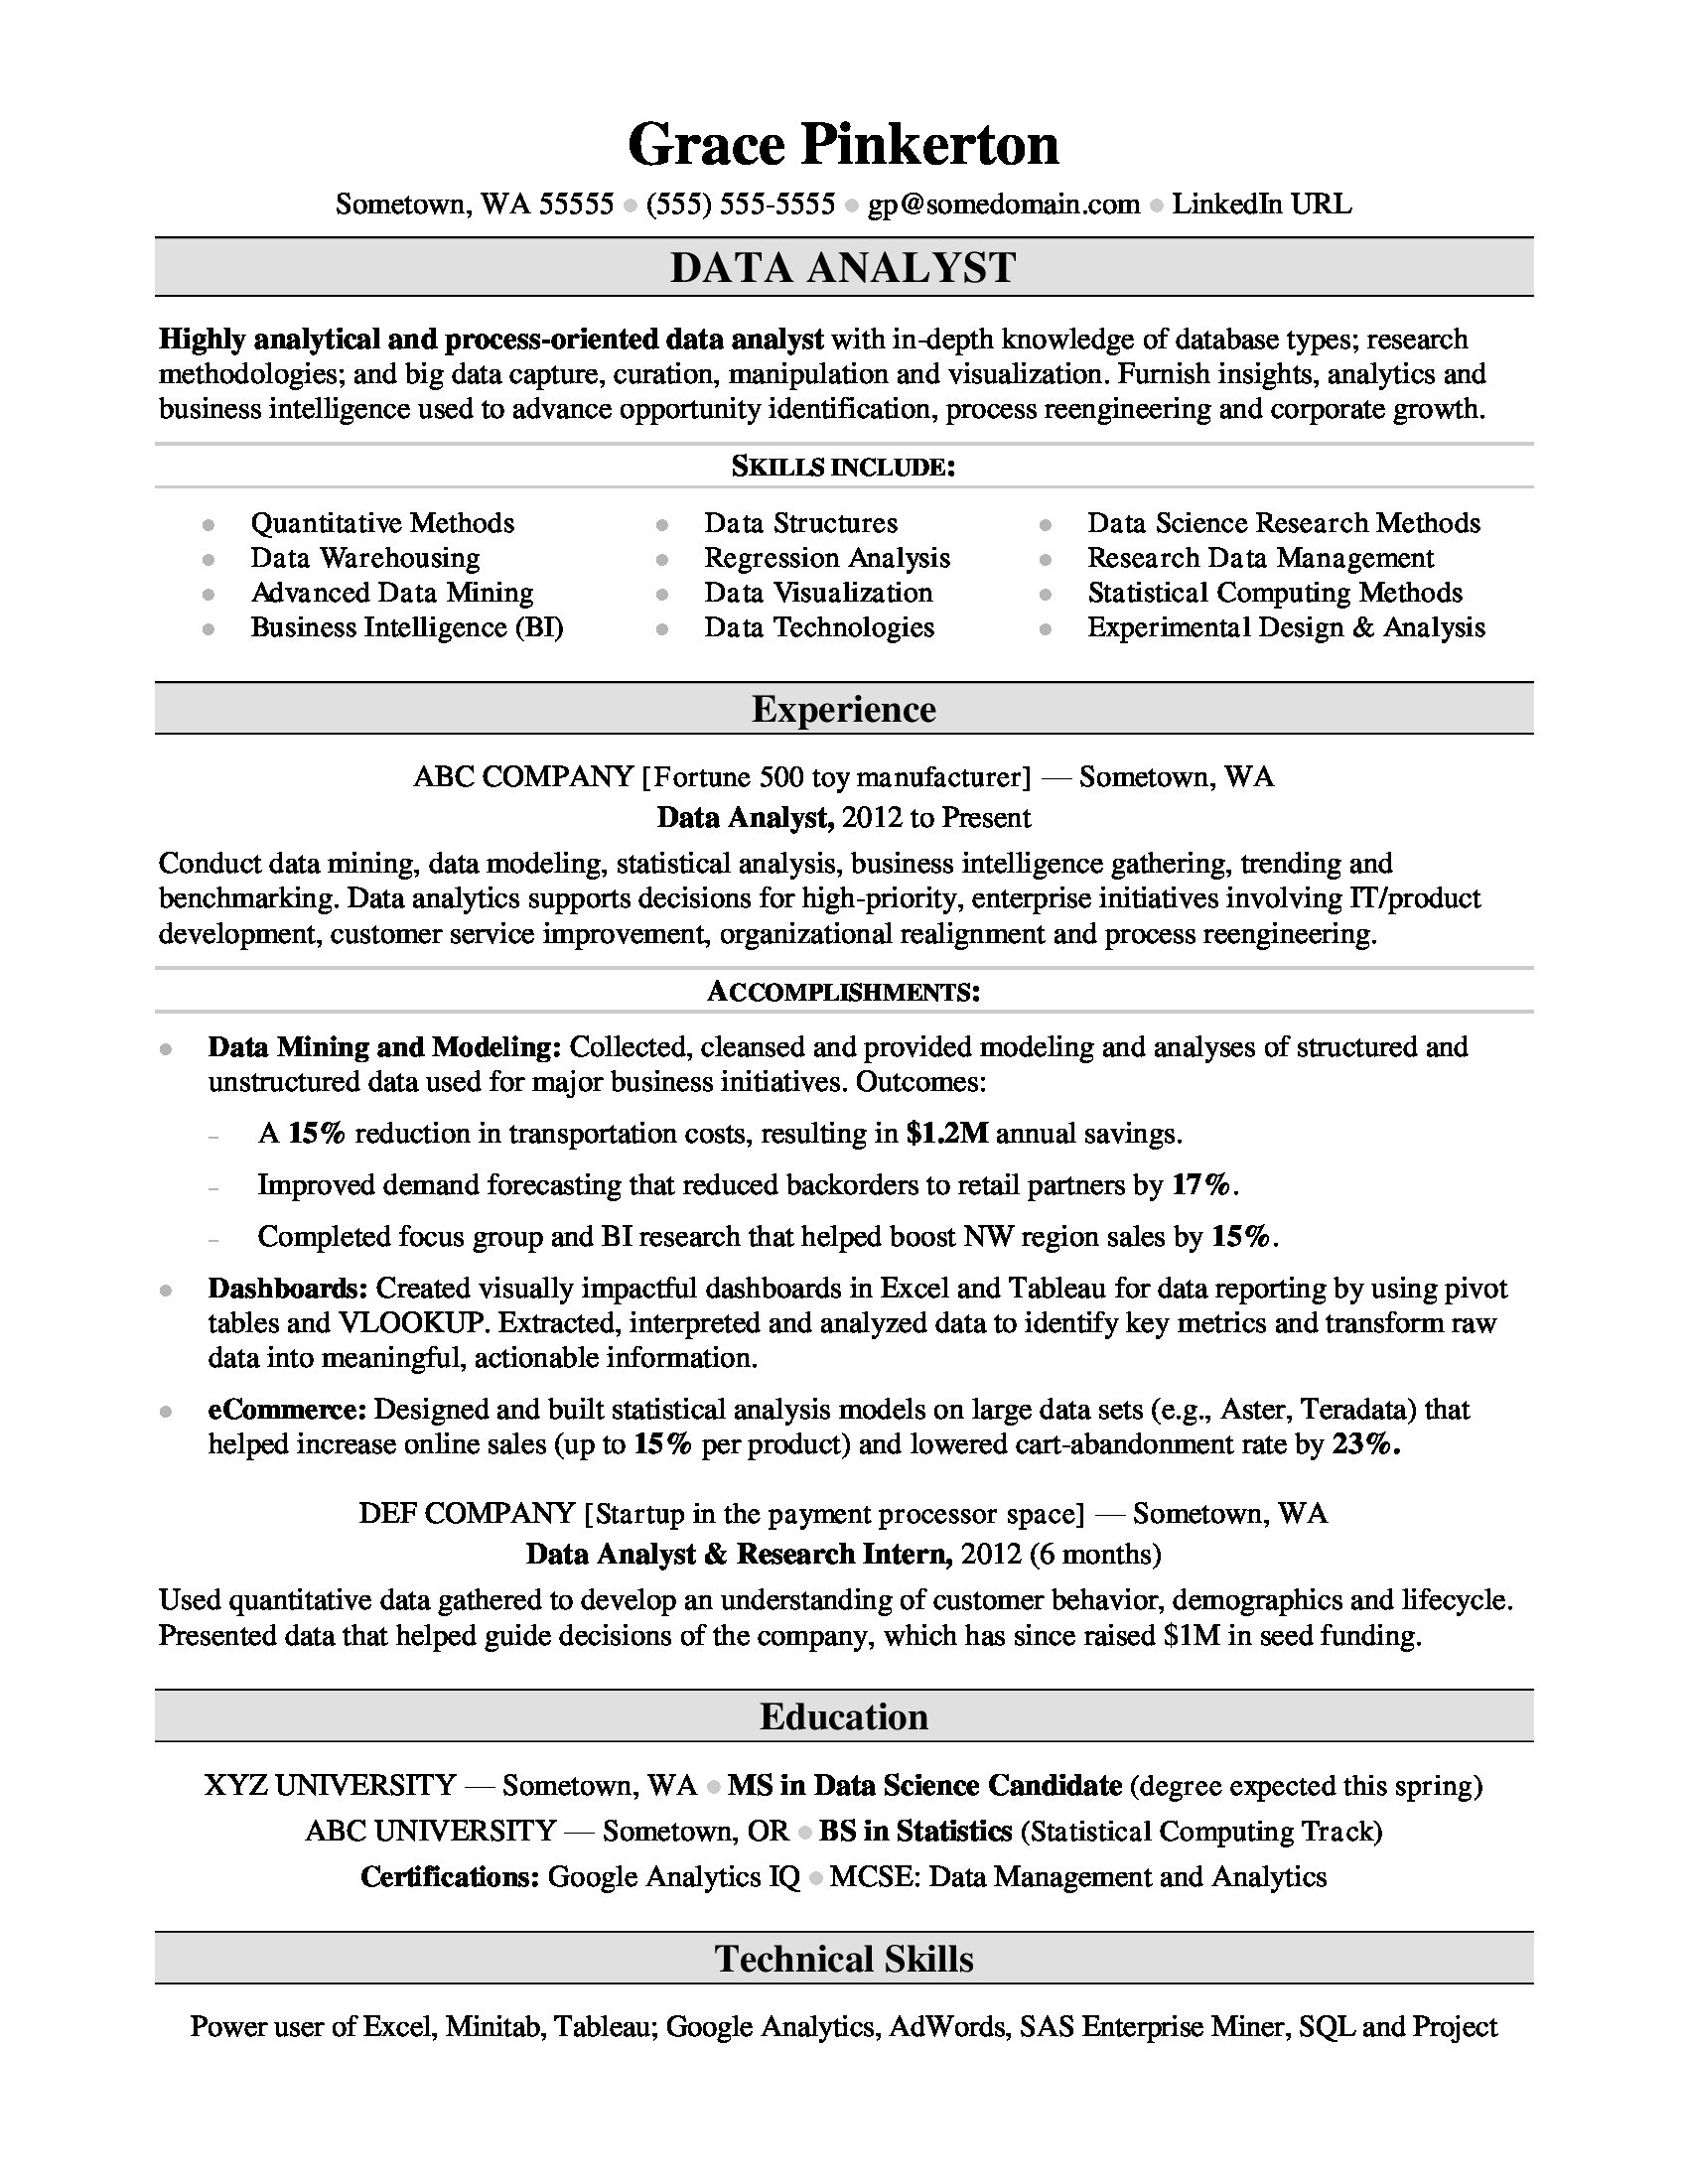 data analyst resume sample - Data Science Internship Resume